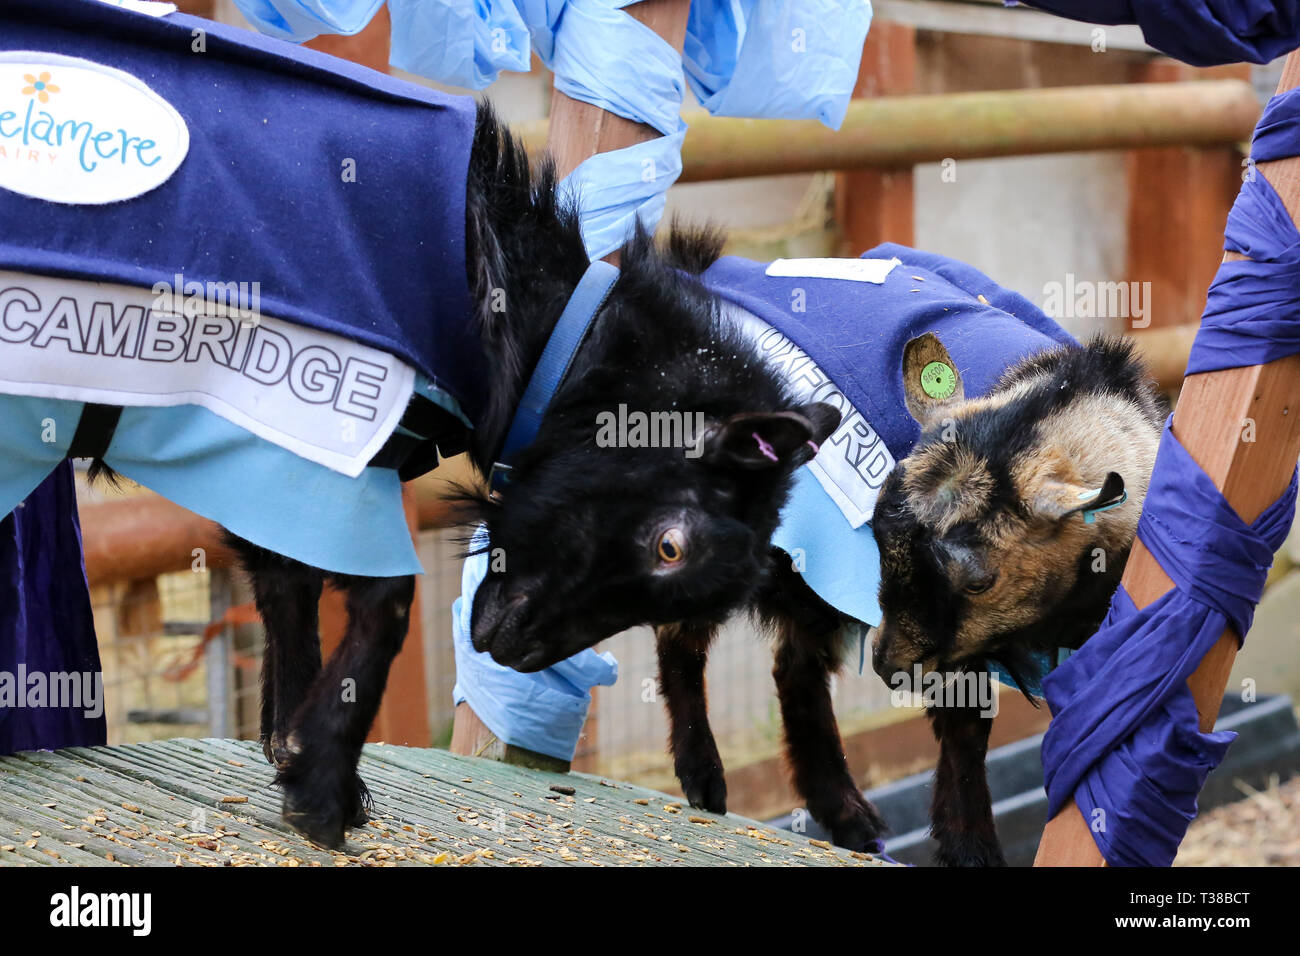 London, UK, UK. 7th Apr, 2019. The winner Hamish representing Oxford is seen with Hugo representing Cambridge on the podium during the Oxford vs Cambridge Goat Race in East London.Two pygmy goats compete during the 10th Oxford and Cambridge Goat Race at Spitalfields City Farm, Bethnal Green in East London. The annual fundraising event, which takes place at the same time as the Oxford and Cambridge boat race, where two goats, one named Hamish representing Oxford and the other Hugo representing Cambridge to be crowned King Billy. (Credit Image: © Dinendra Haria/SOPA Images via ZUM - Stock Image